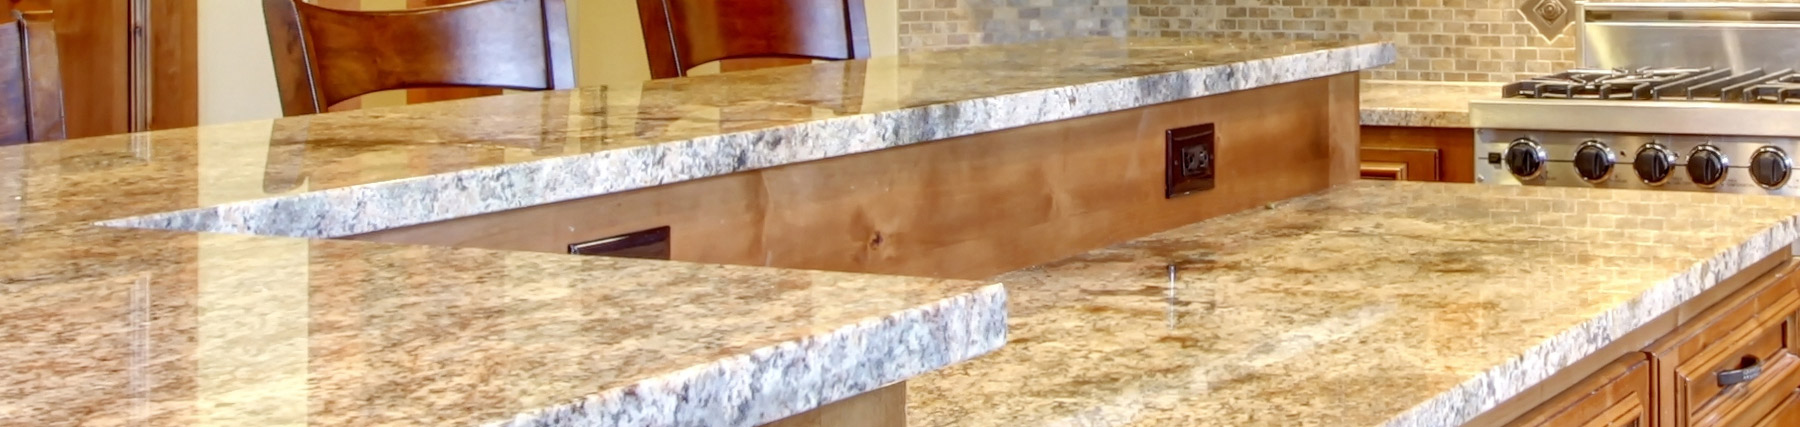 Granite Colors For Kitchen Countertops As Per Vastu : Granite Countertops Starting At $29 per SF Cutting Edge Countertops ...